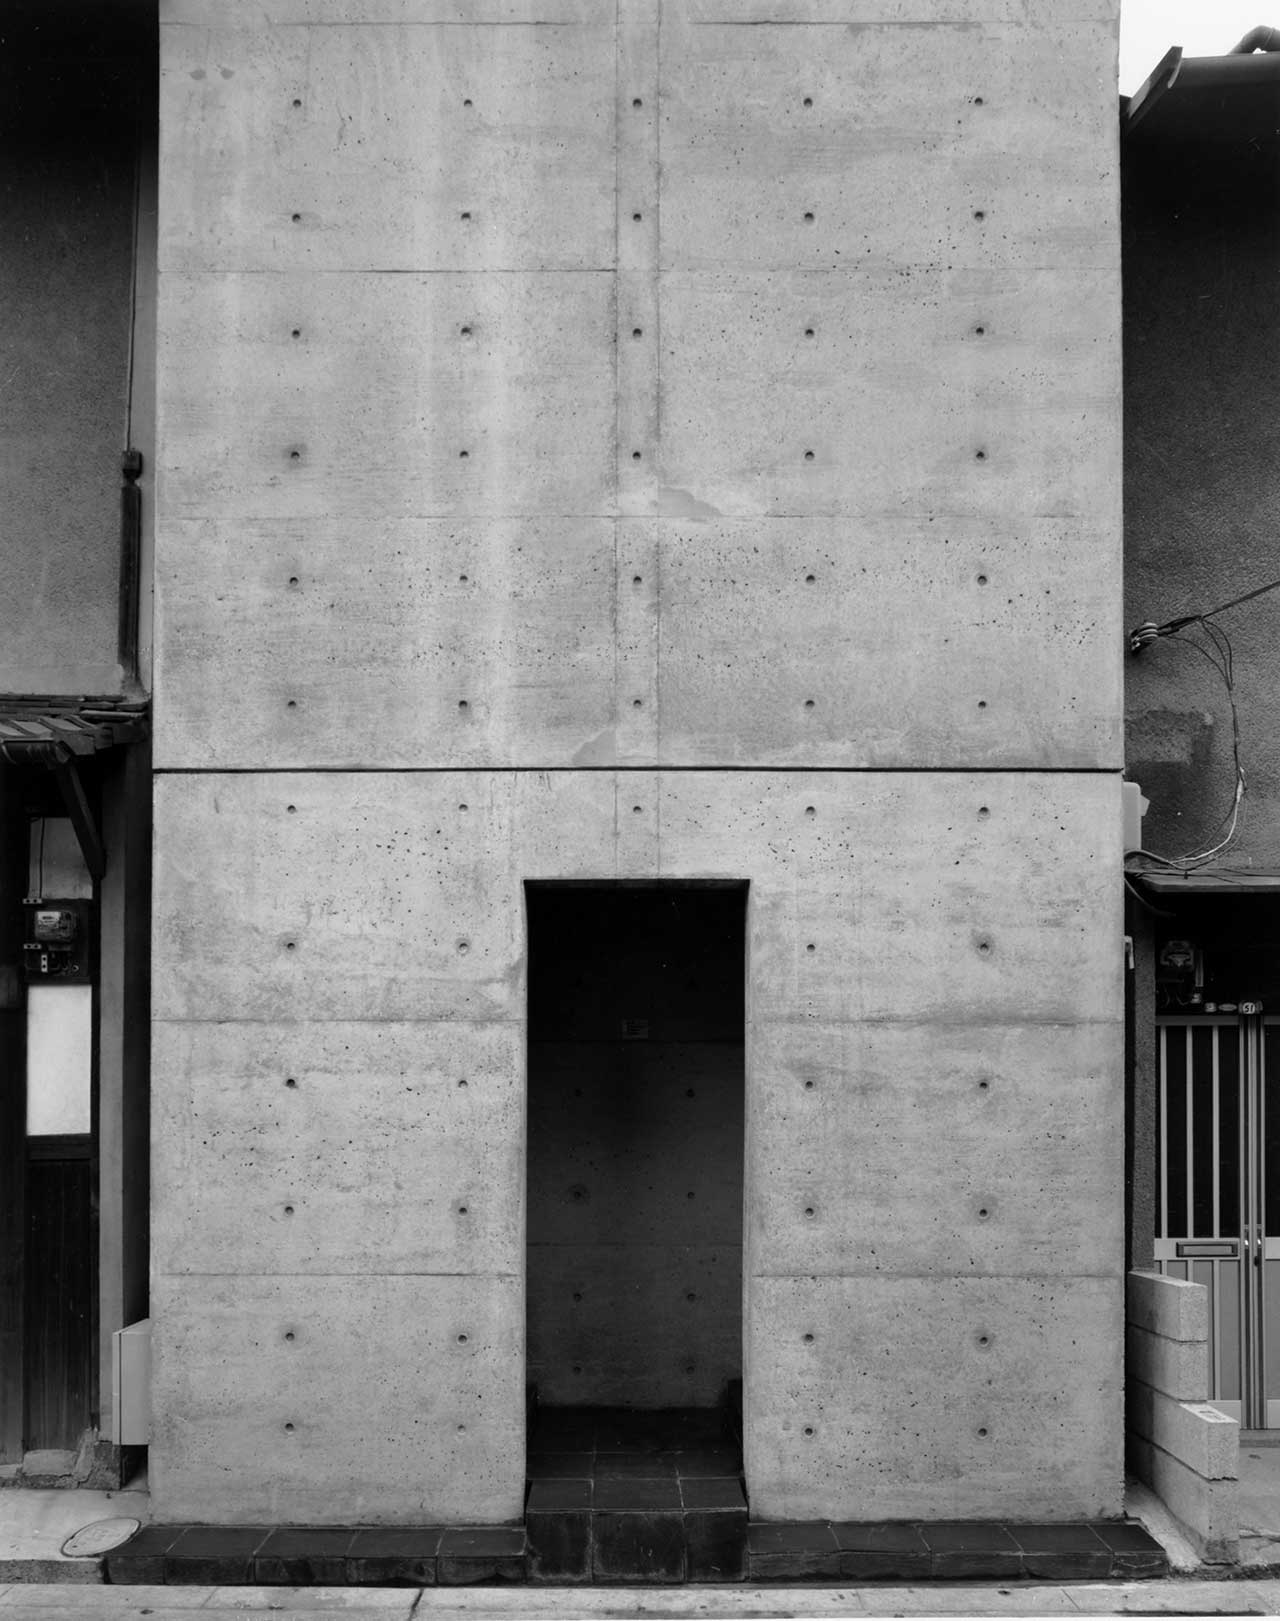 Row House in Sumiyoshi, 1976, Osaka, Osaka. Photo by Shinkenchiku-sha.